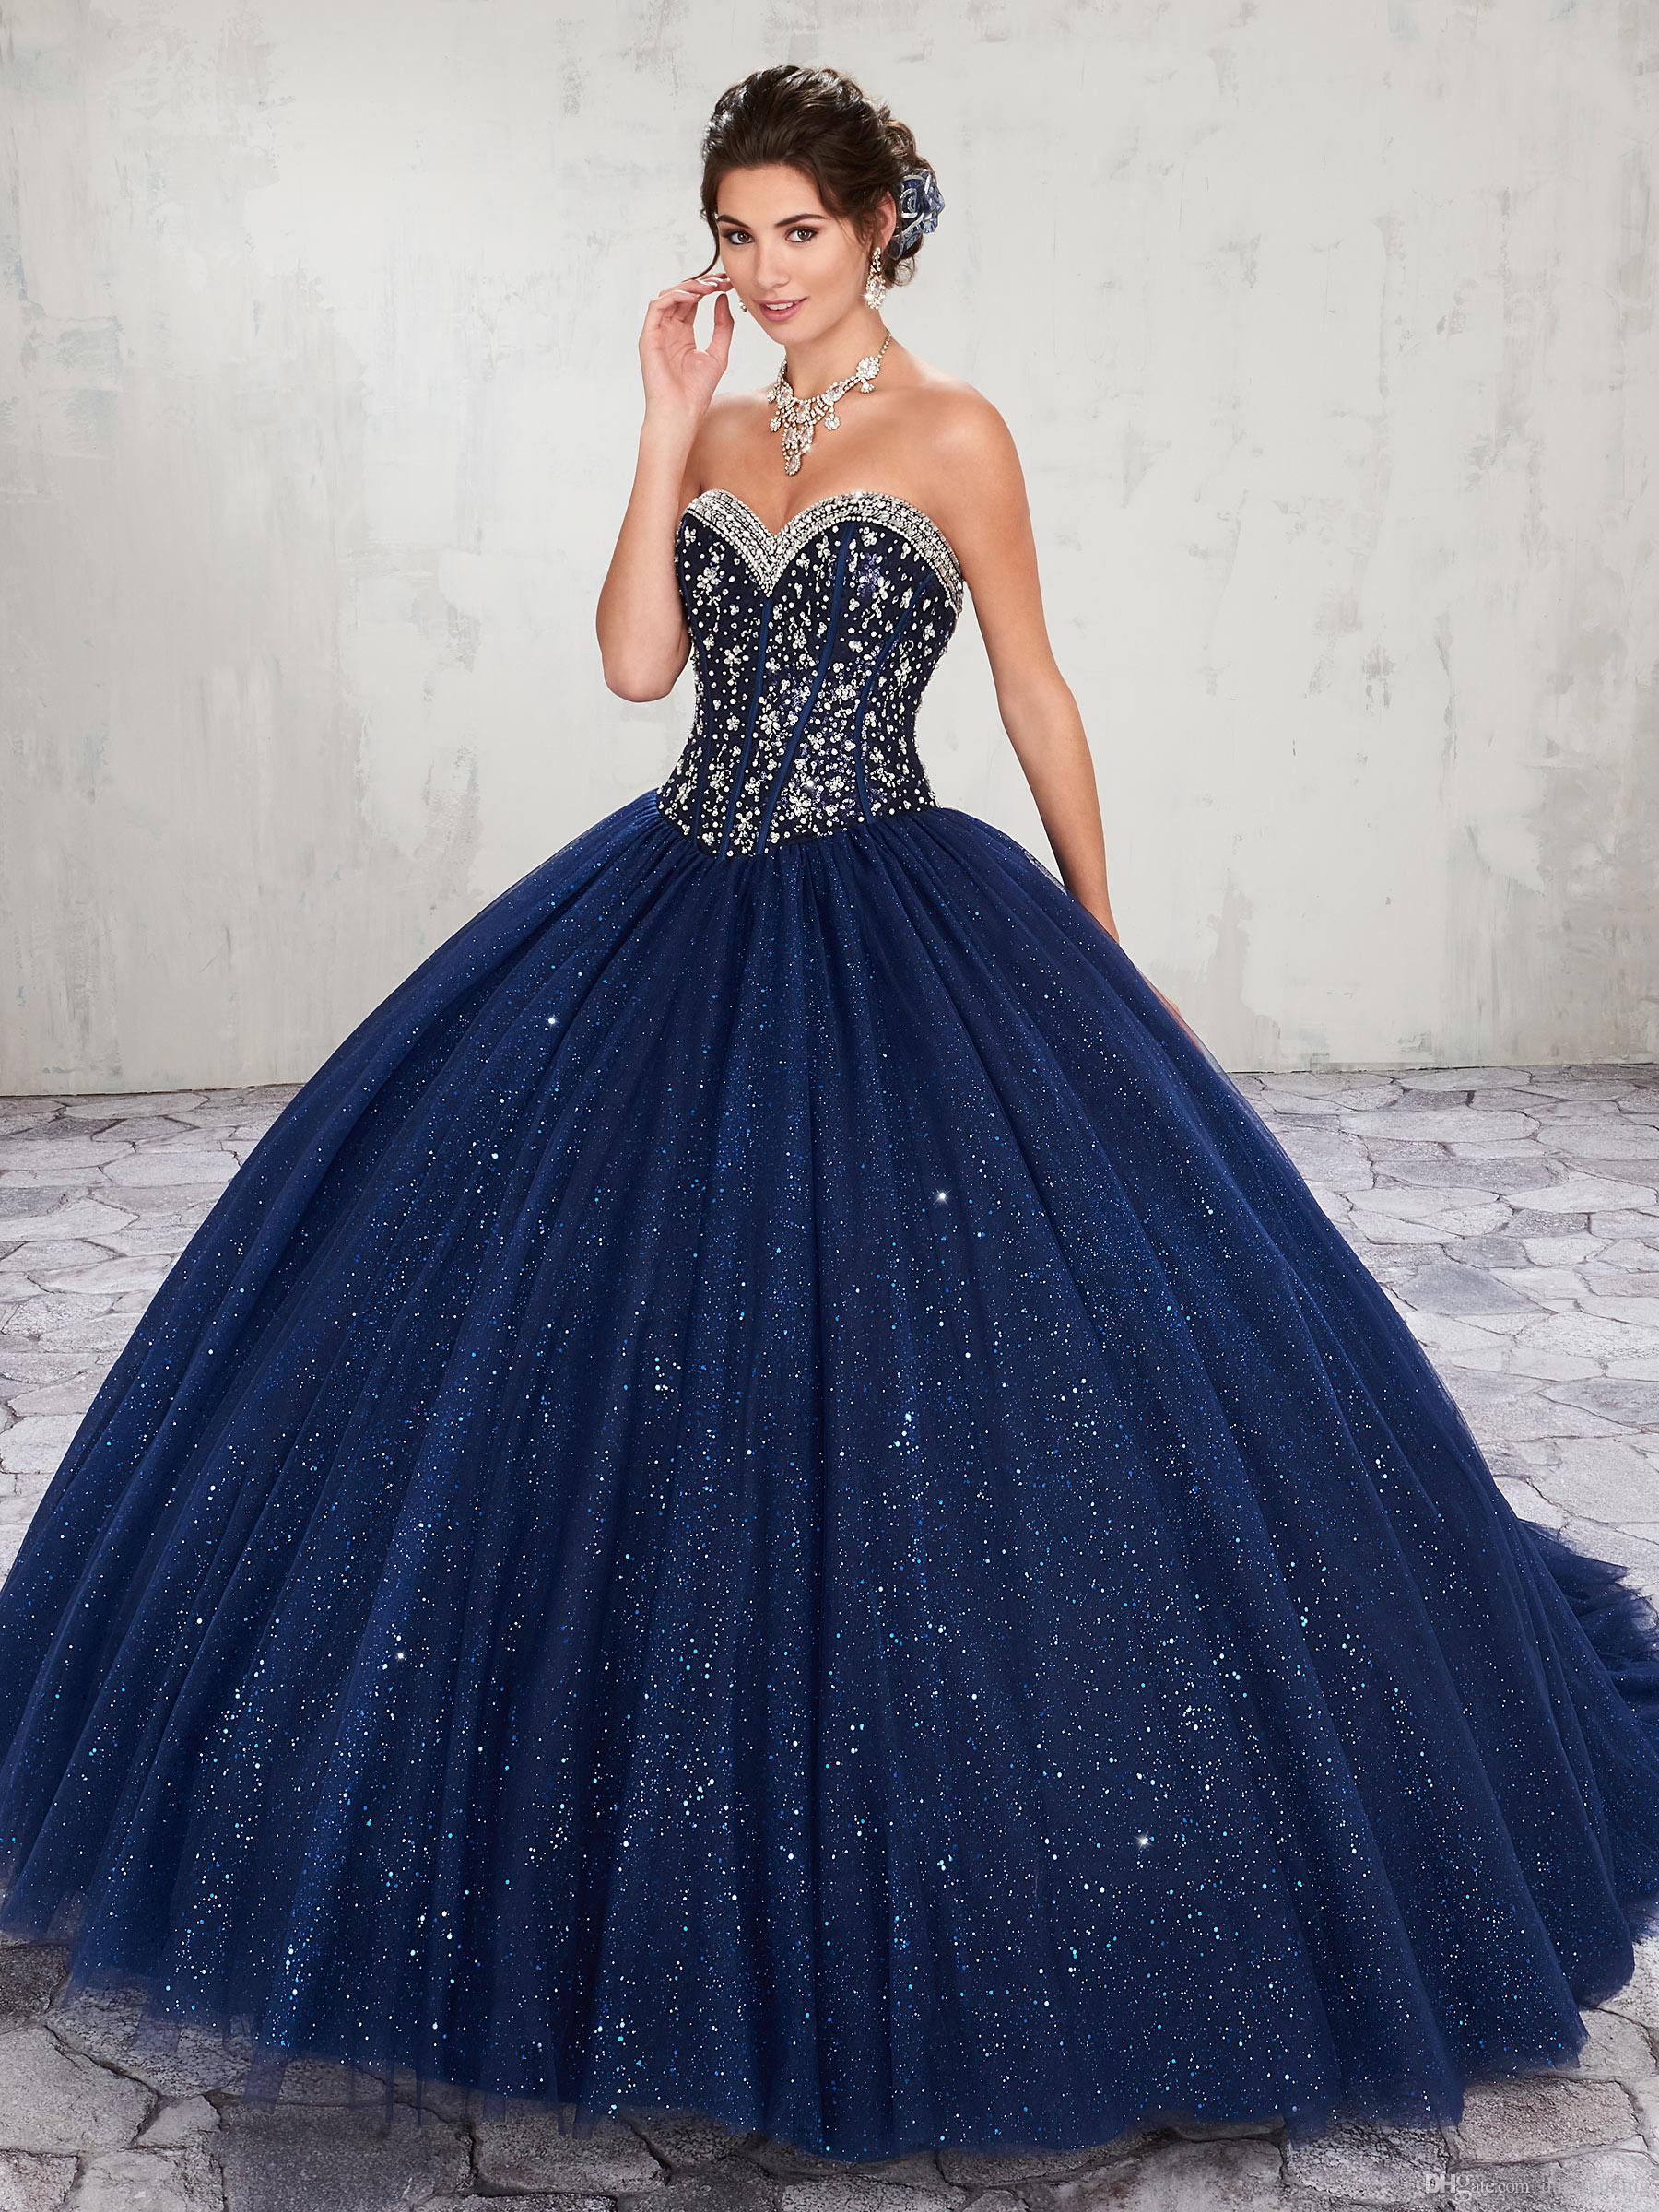 89b105fc1b6b6 Shinning Dark Blue Wine Sweetheart Beads Quinceanera Dresses Special  Occasion Party Dresses Dance Prom Dresses Custom Size 2-18 KF1230362